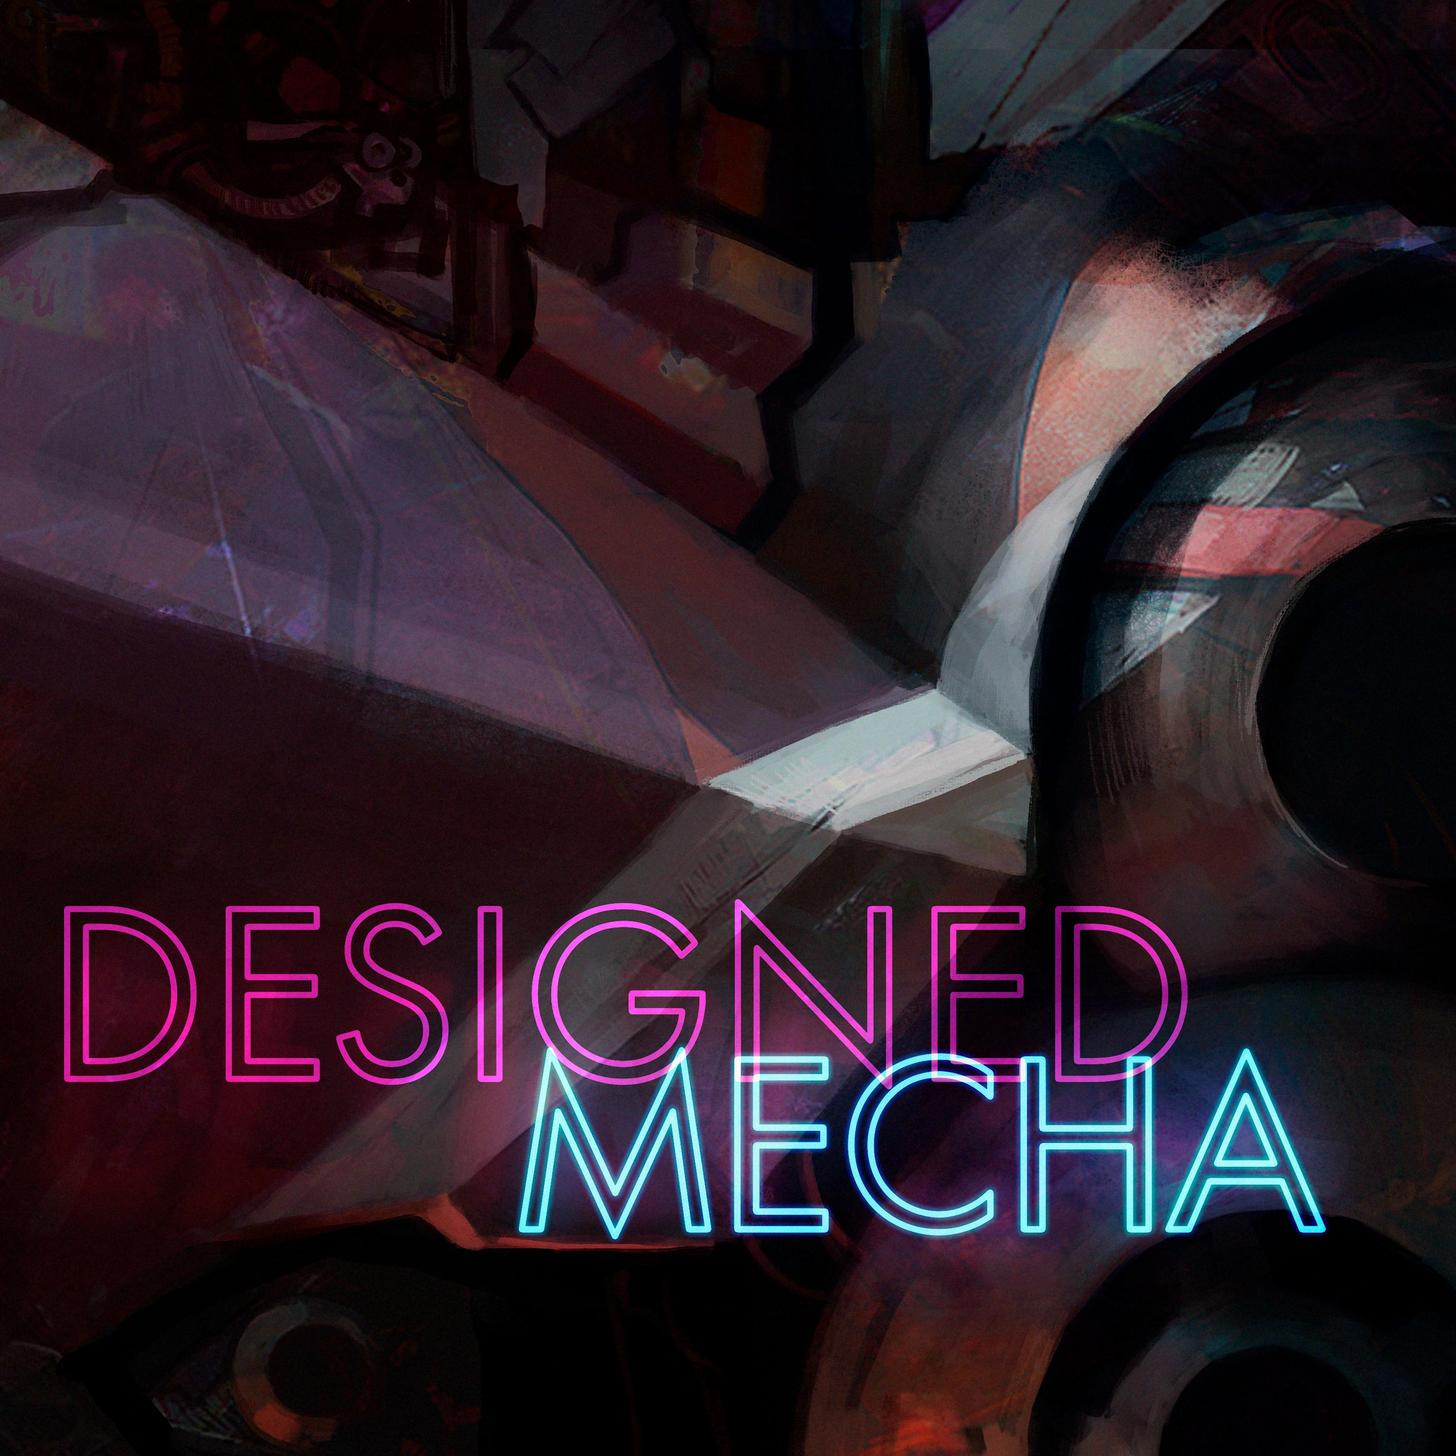 Designed Mecha is all about exploring the inner and outer working mechanisms of an at times slightly malfunctioning mecha and its environment. It features various kinds of mecha / robot sound effects, ambiences, mechanism and servo sounds, impacts, and glitches -